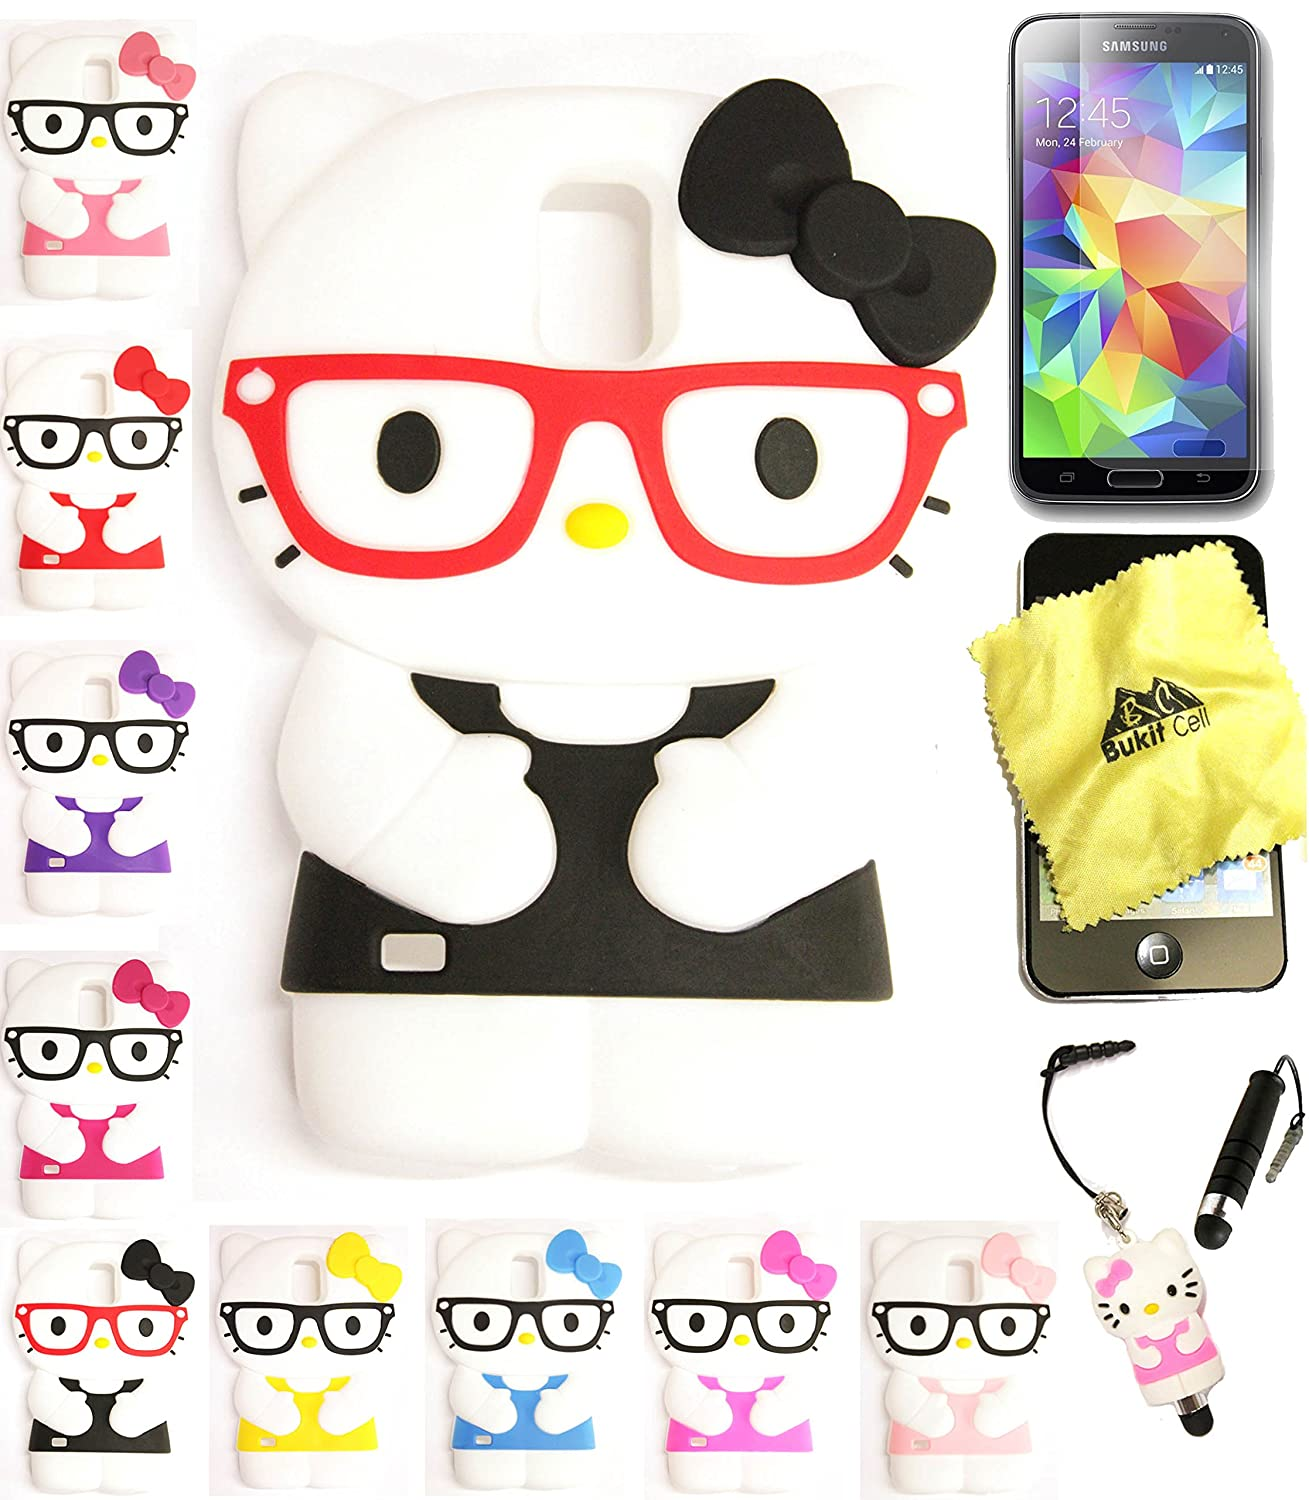 c162173a1fb052 Bukit Cell Galaxy S5 Case : BLACK 3D Hello Kitty (with Glasses )Silicone  Case for Samsung Galaxy S5 + BUKIT CELL Cloth + Hello Kitty Stylus Touch  Pen + ...